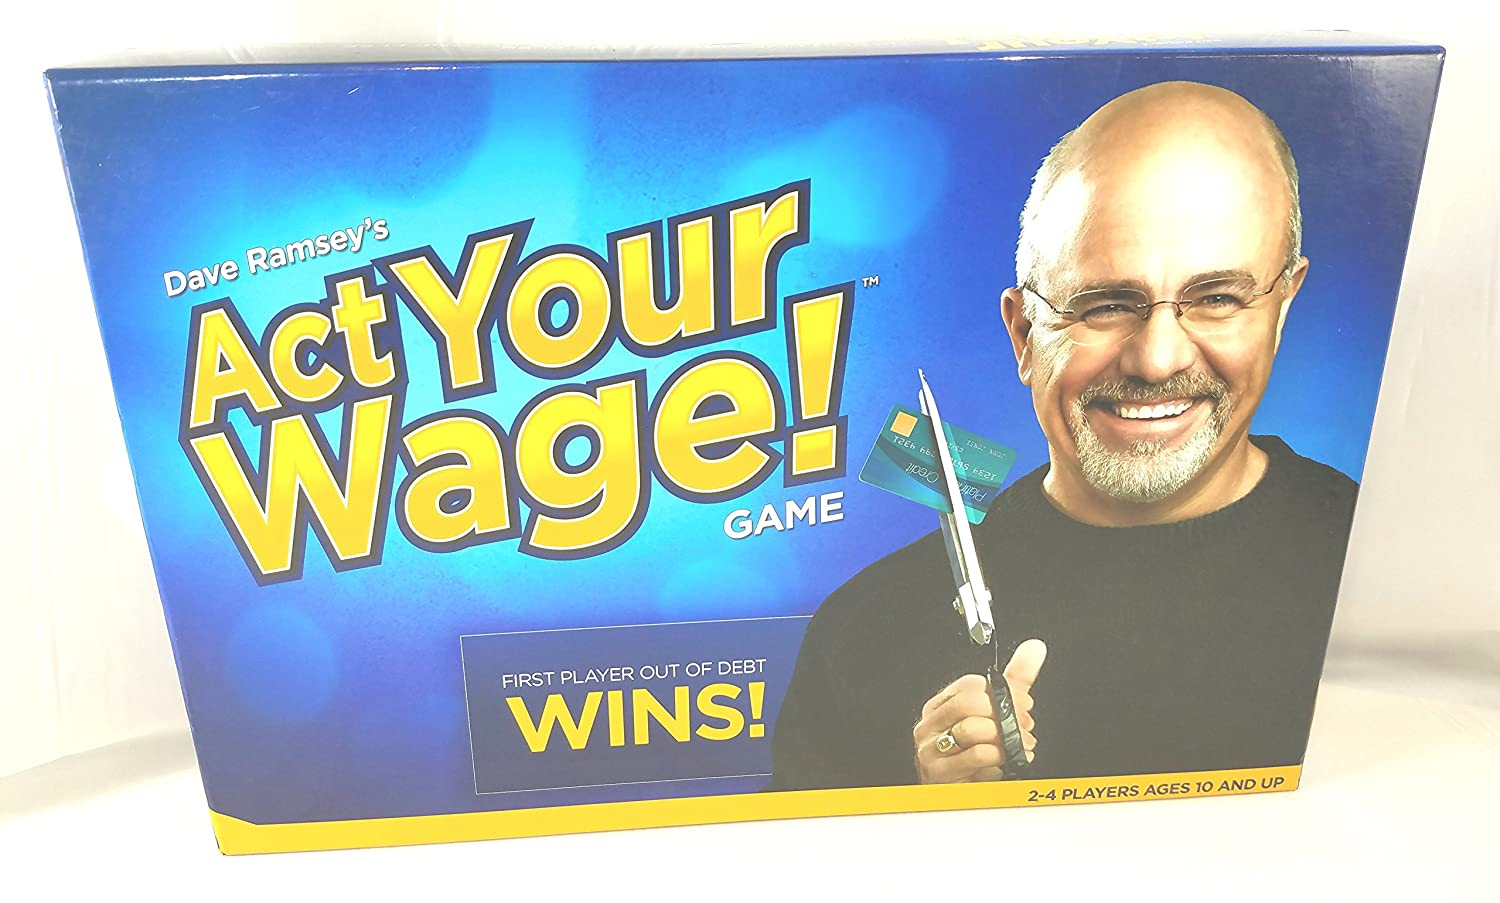 Dave ramsey endorsed car dealer - Amazon Com Dave Ramsey S Act Your Wage Board Game Dave Ramsey Toys Games